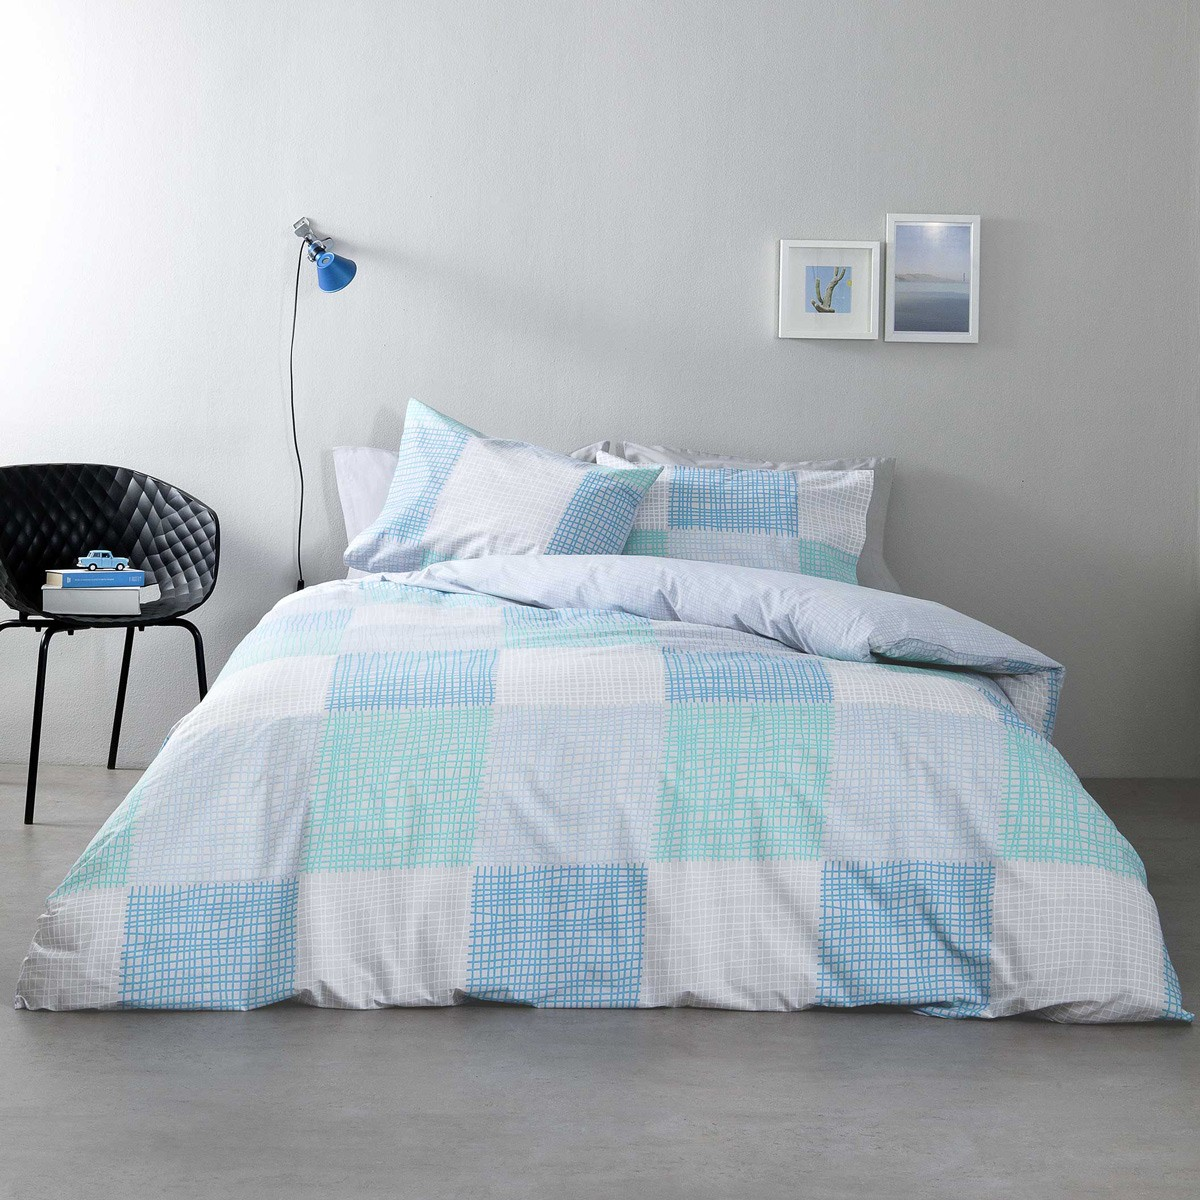 Κουβερλί Μονό Nima Bed Linen Rattan Blue